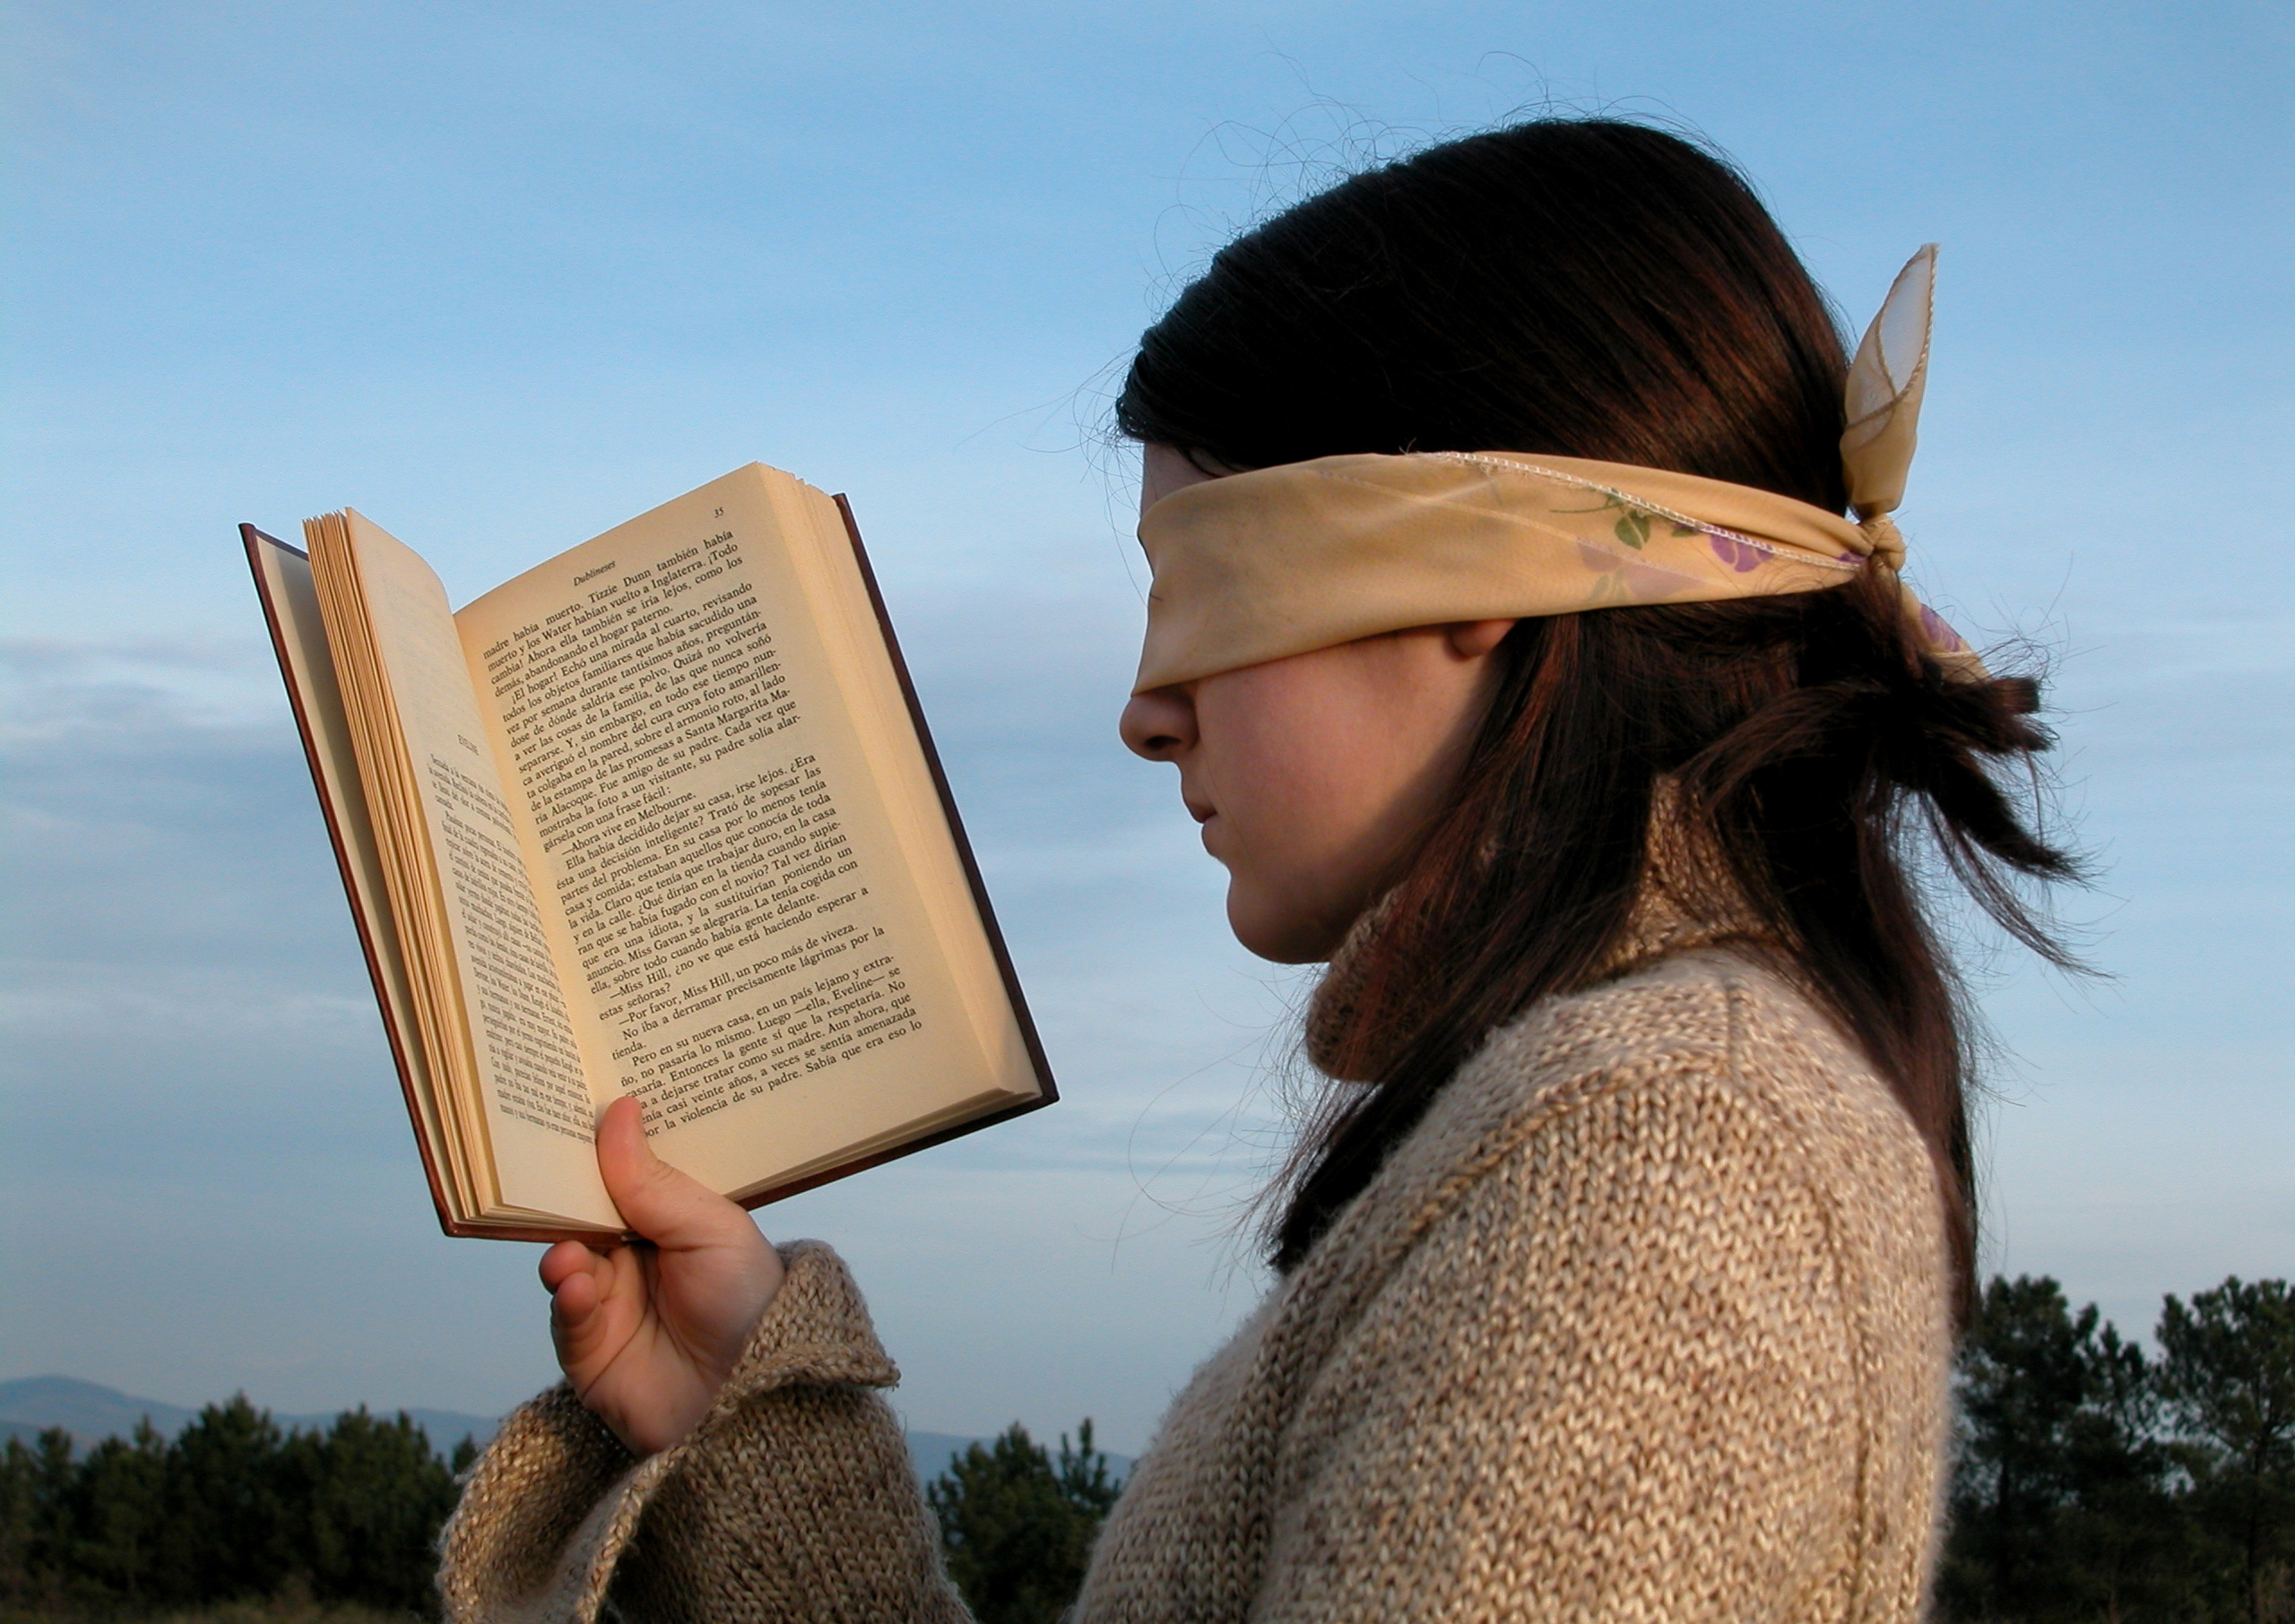 A woman is wearing a blindfold and holding up a book as if she is reading it.